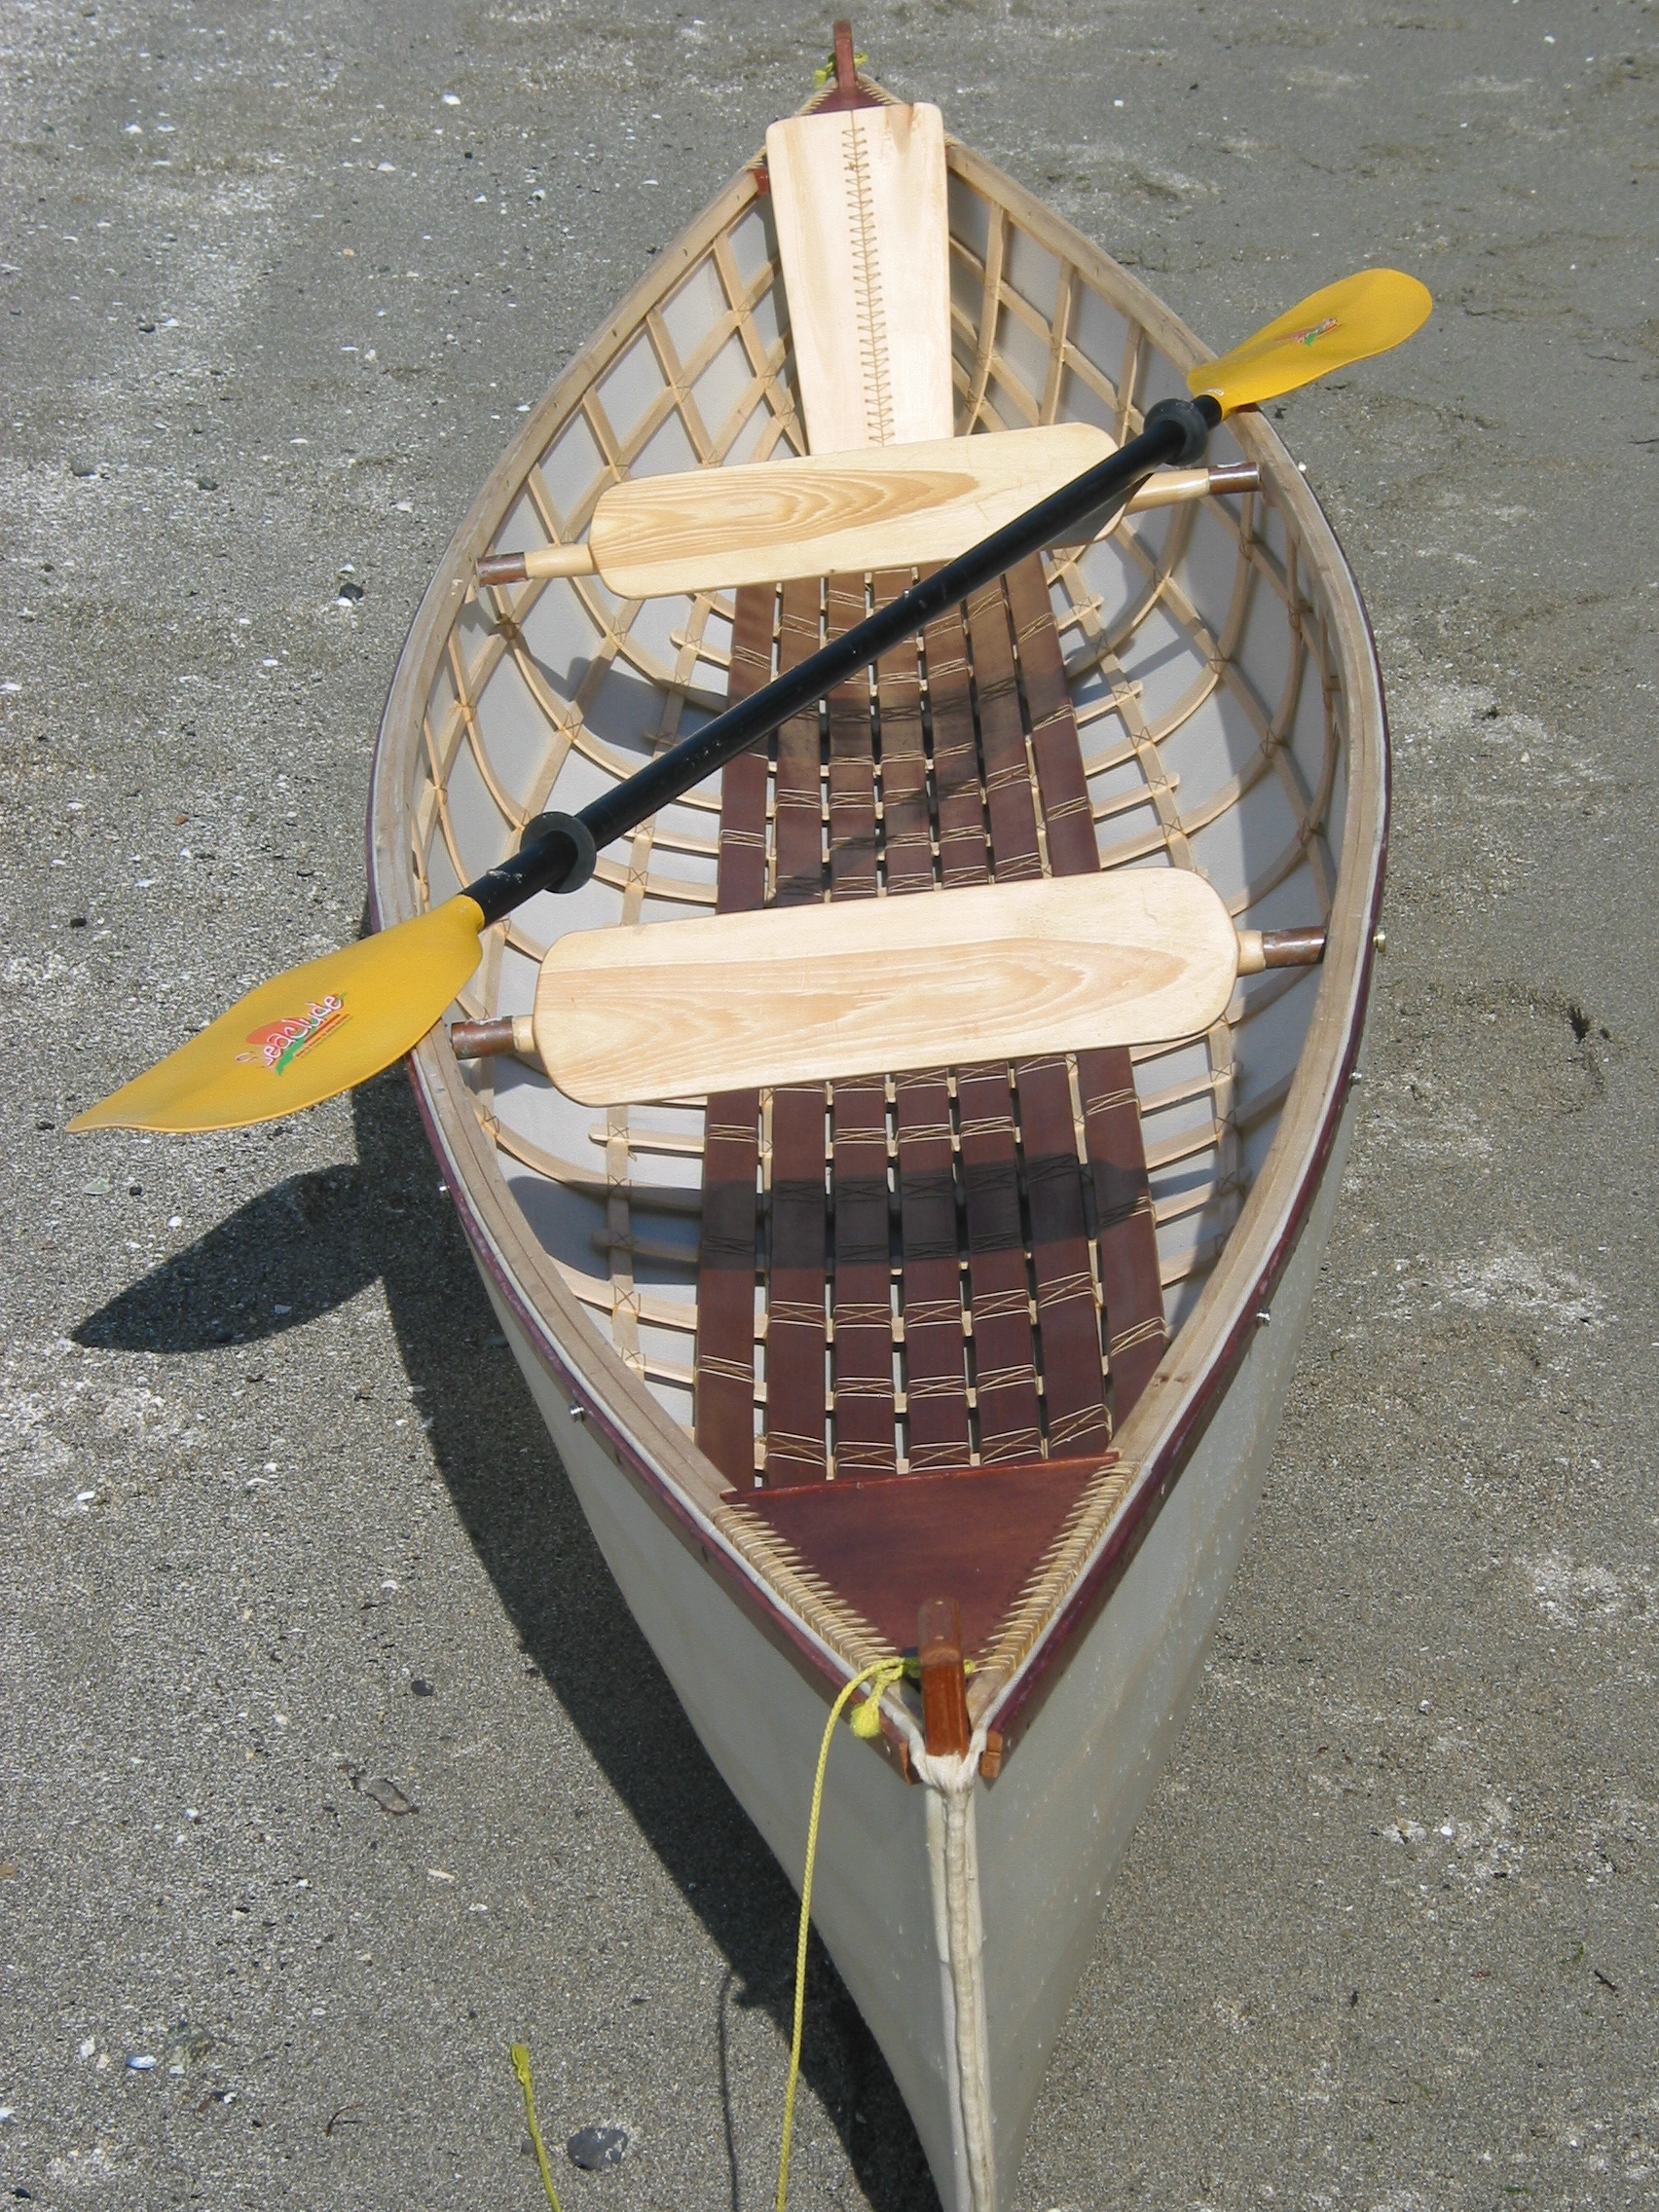 Skin on frame kayak plans - Get Started Building A 2 Man Canoe Open Kayak Right Away No Running From Store To Store To Buy Each Item This Two Person Boat Kit Contains Everything